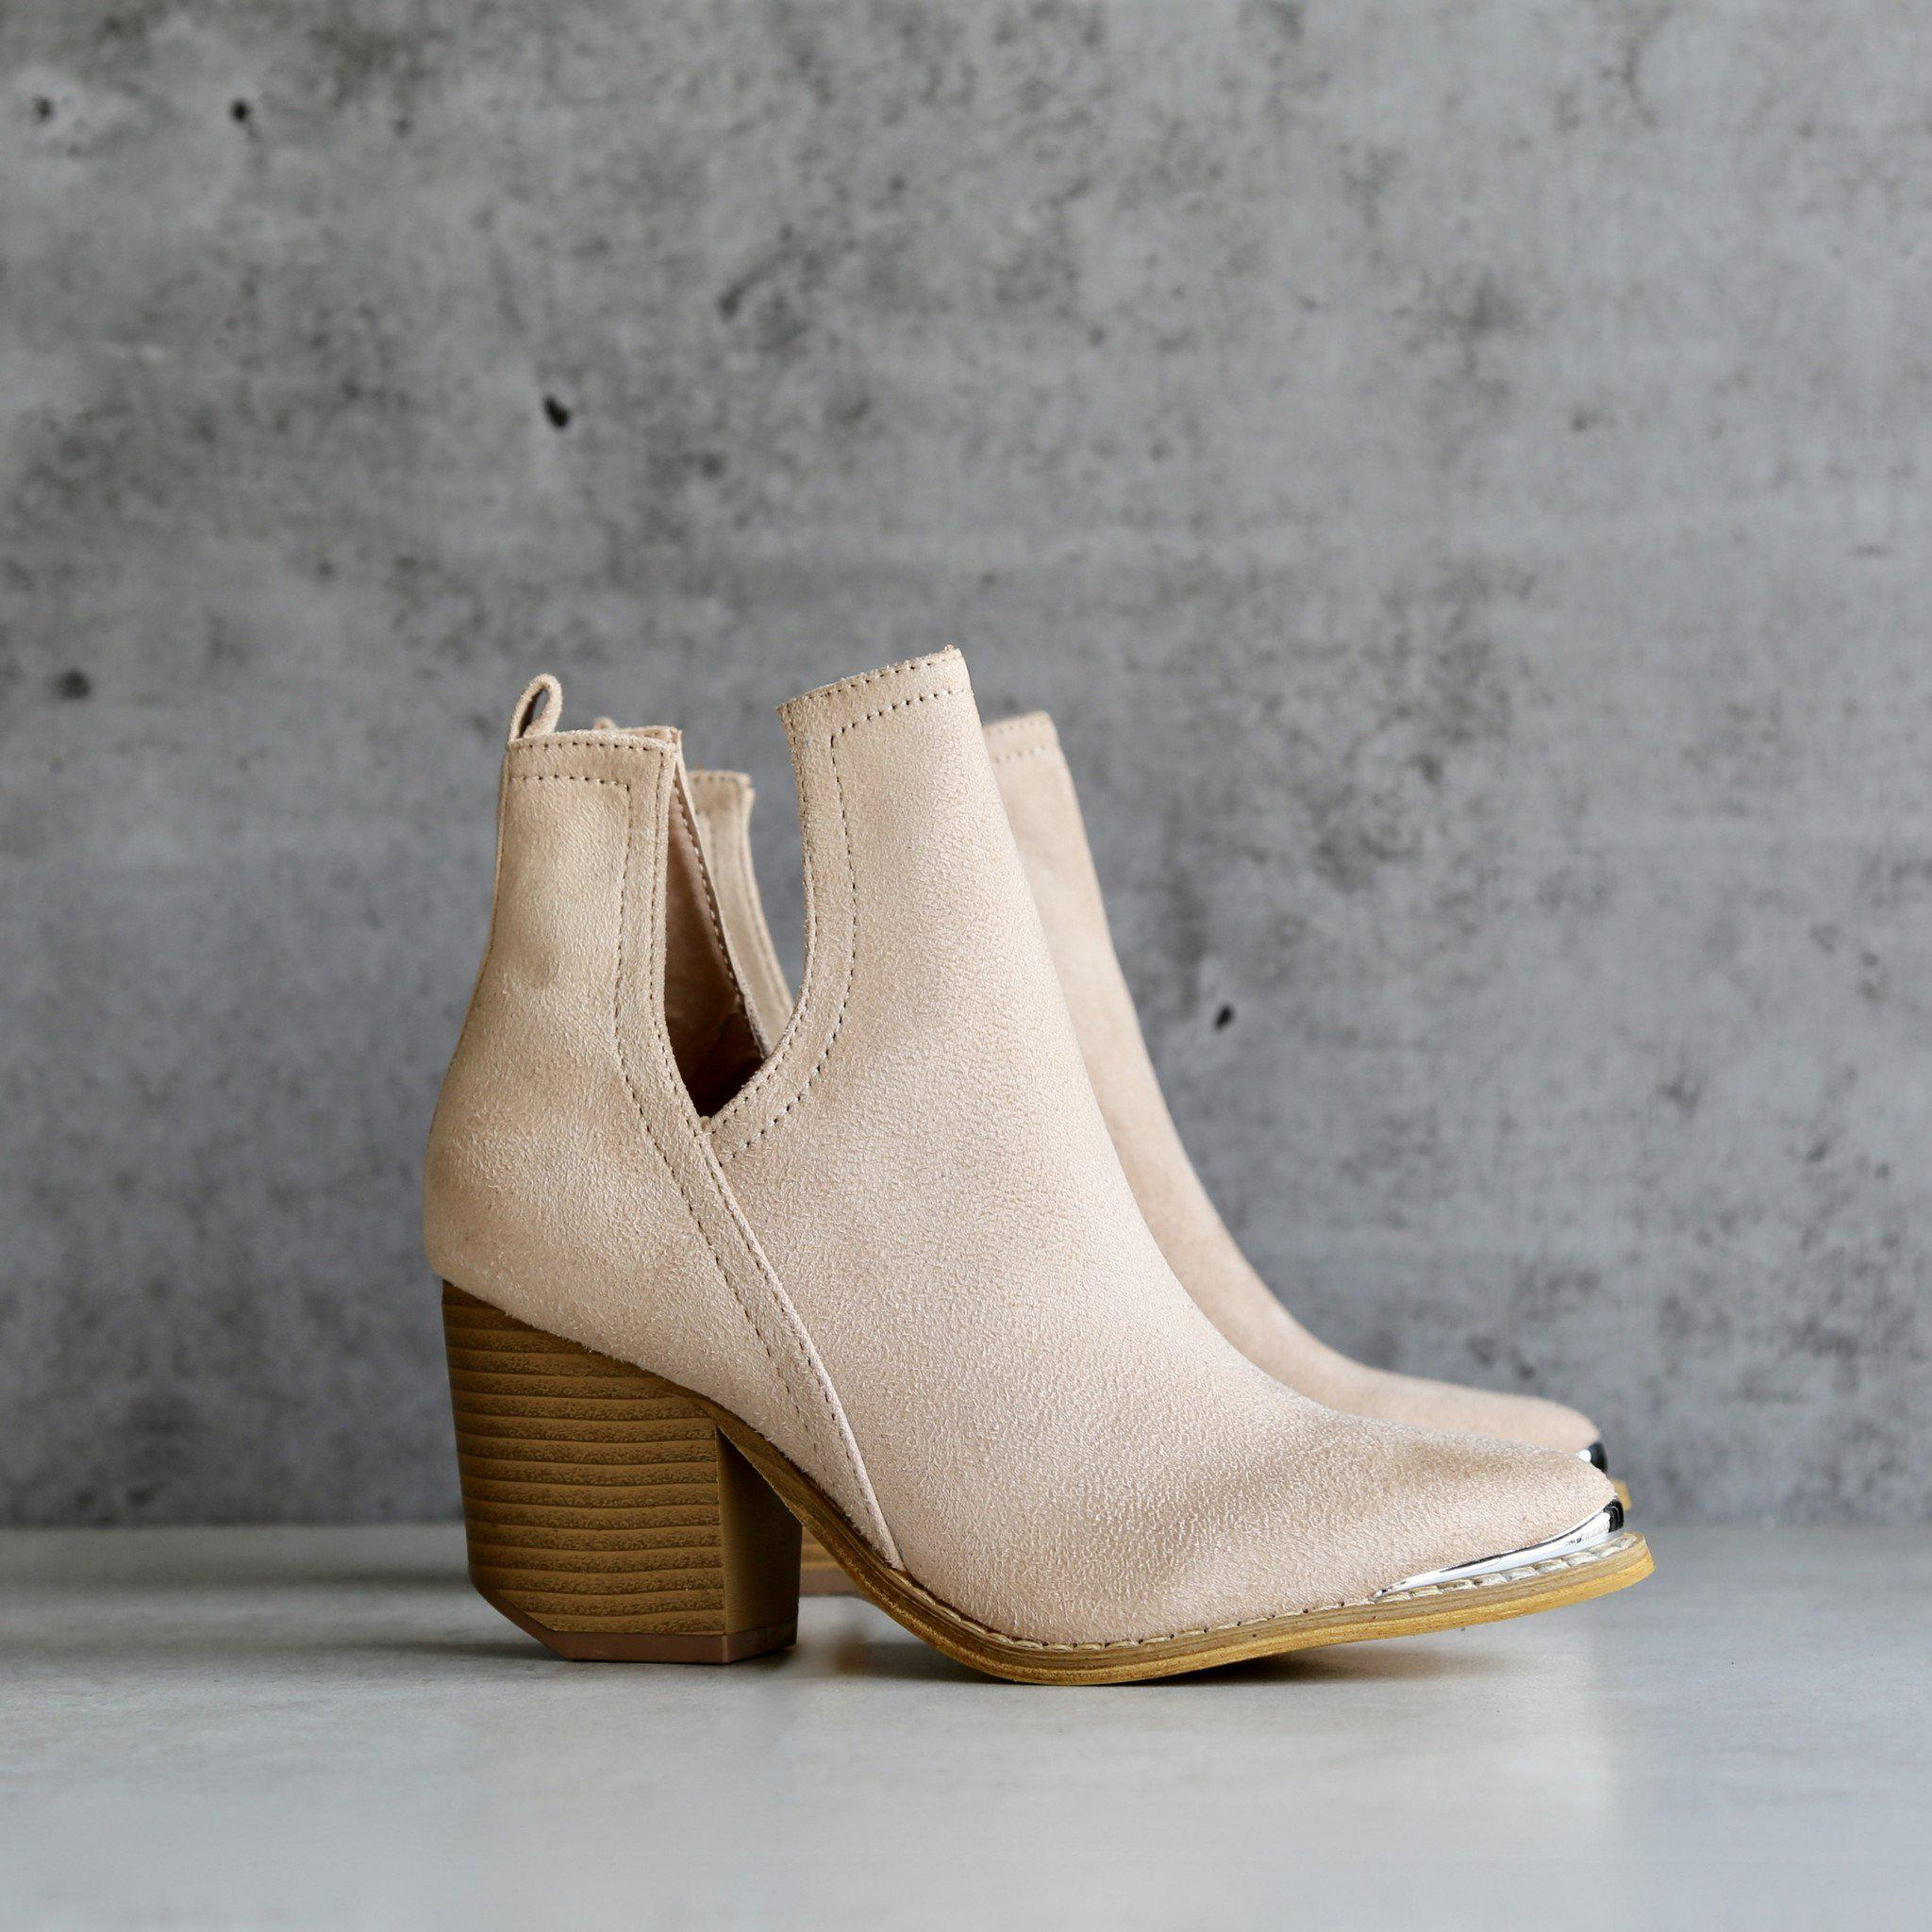 Image of final sale - vegan suede side cut out bootie with metal tip - nude